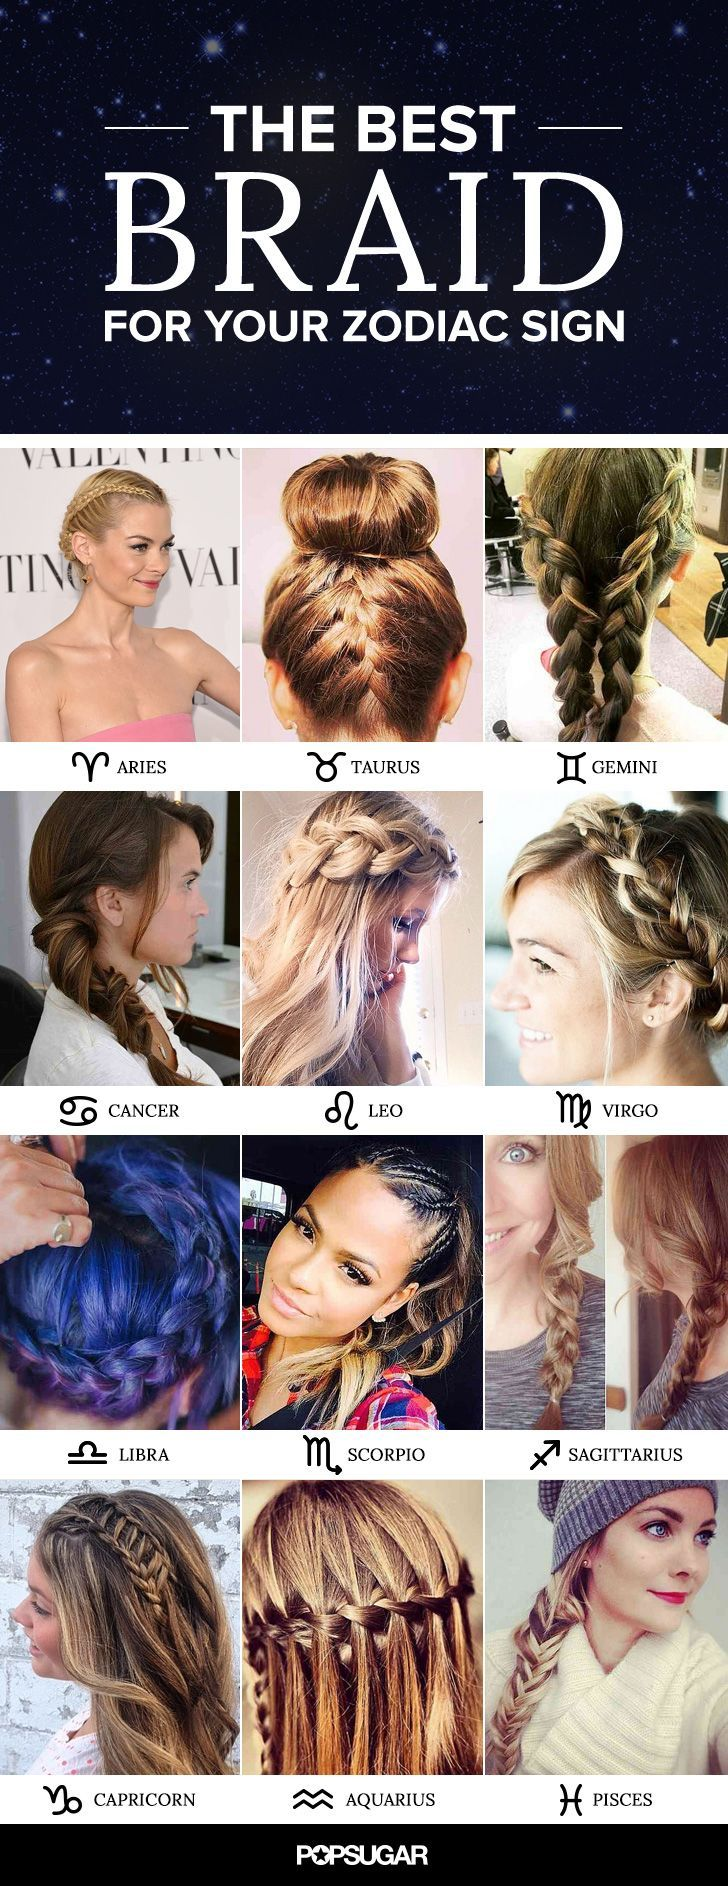 Hey baby, what's your sign? Pair your zodiac sign with these star-aligned braids!